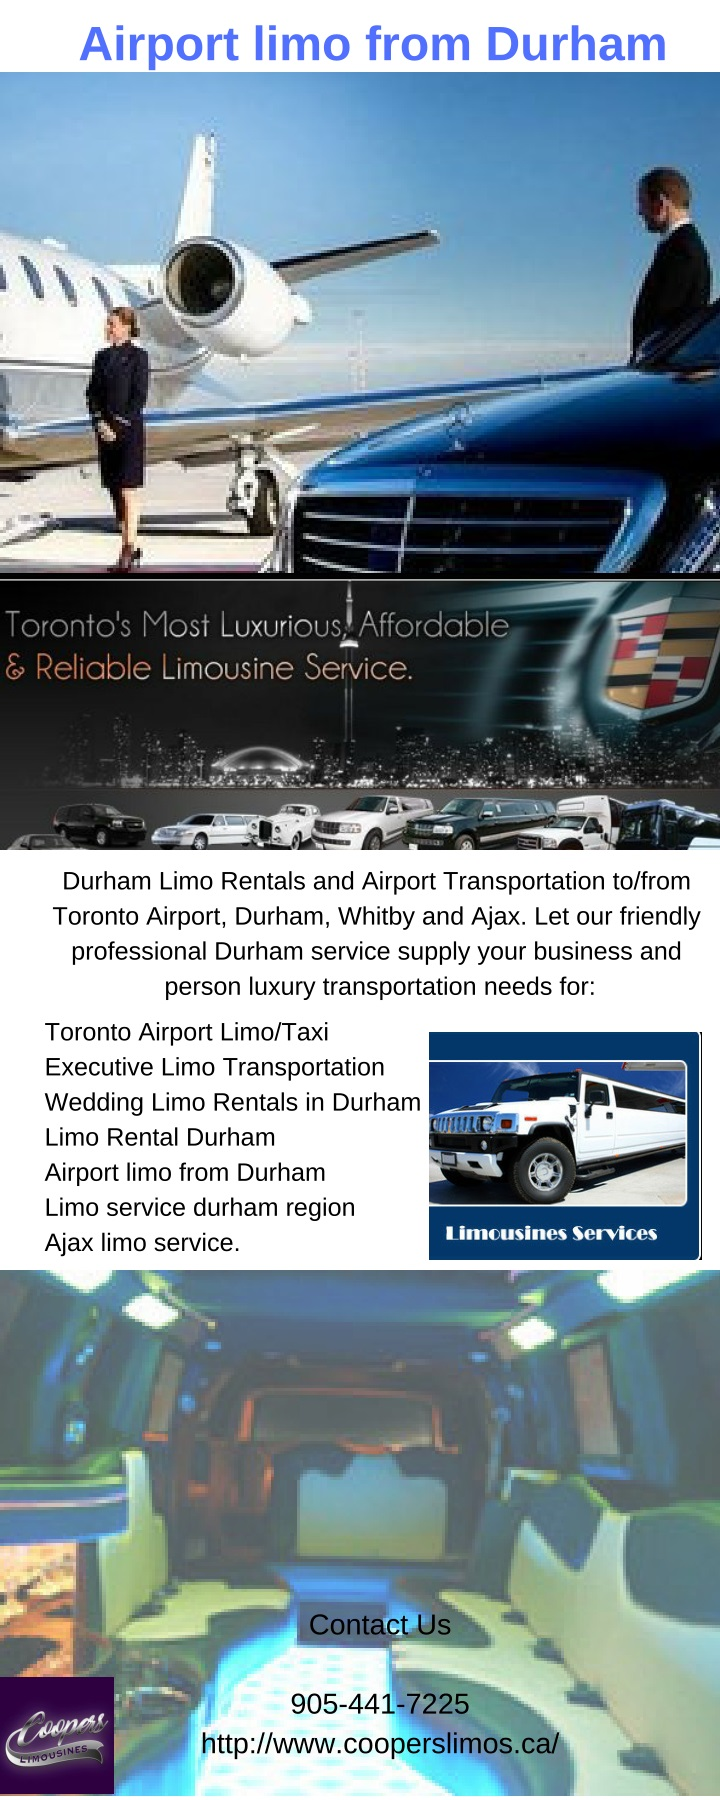 airport limo from durham n.